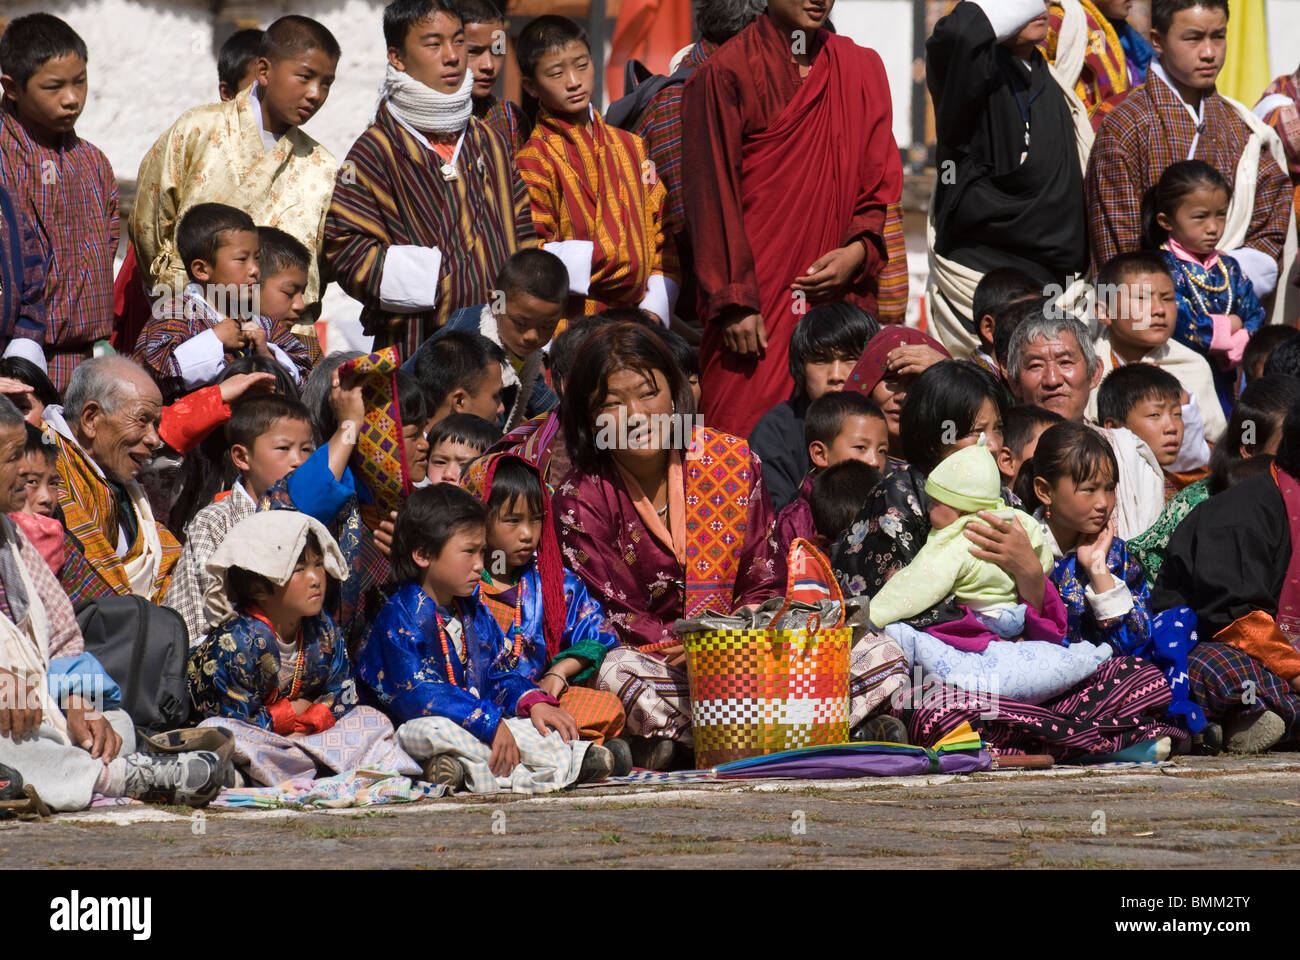 Religious festivity with man visitors and dances,Paro,Tsechu,Bhutan,Asia - Stock Image